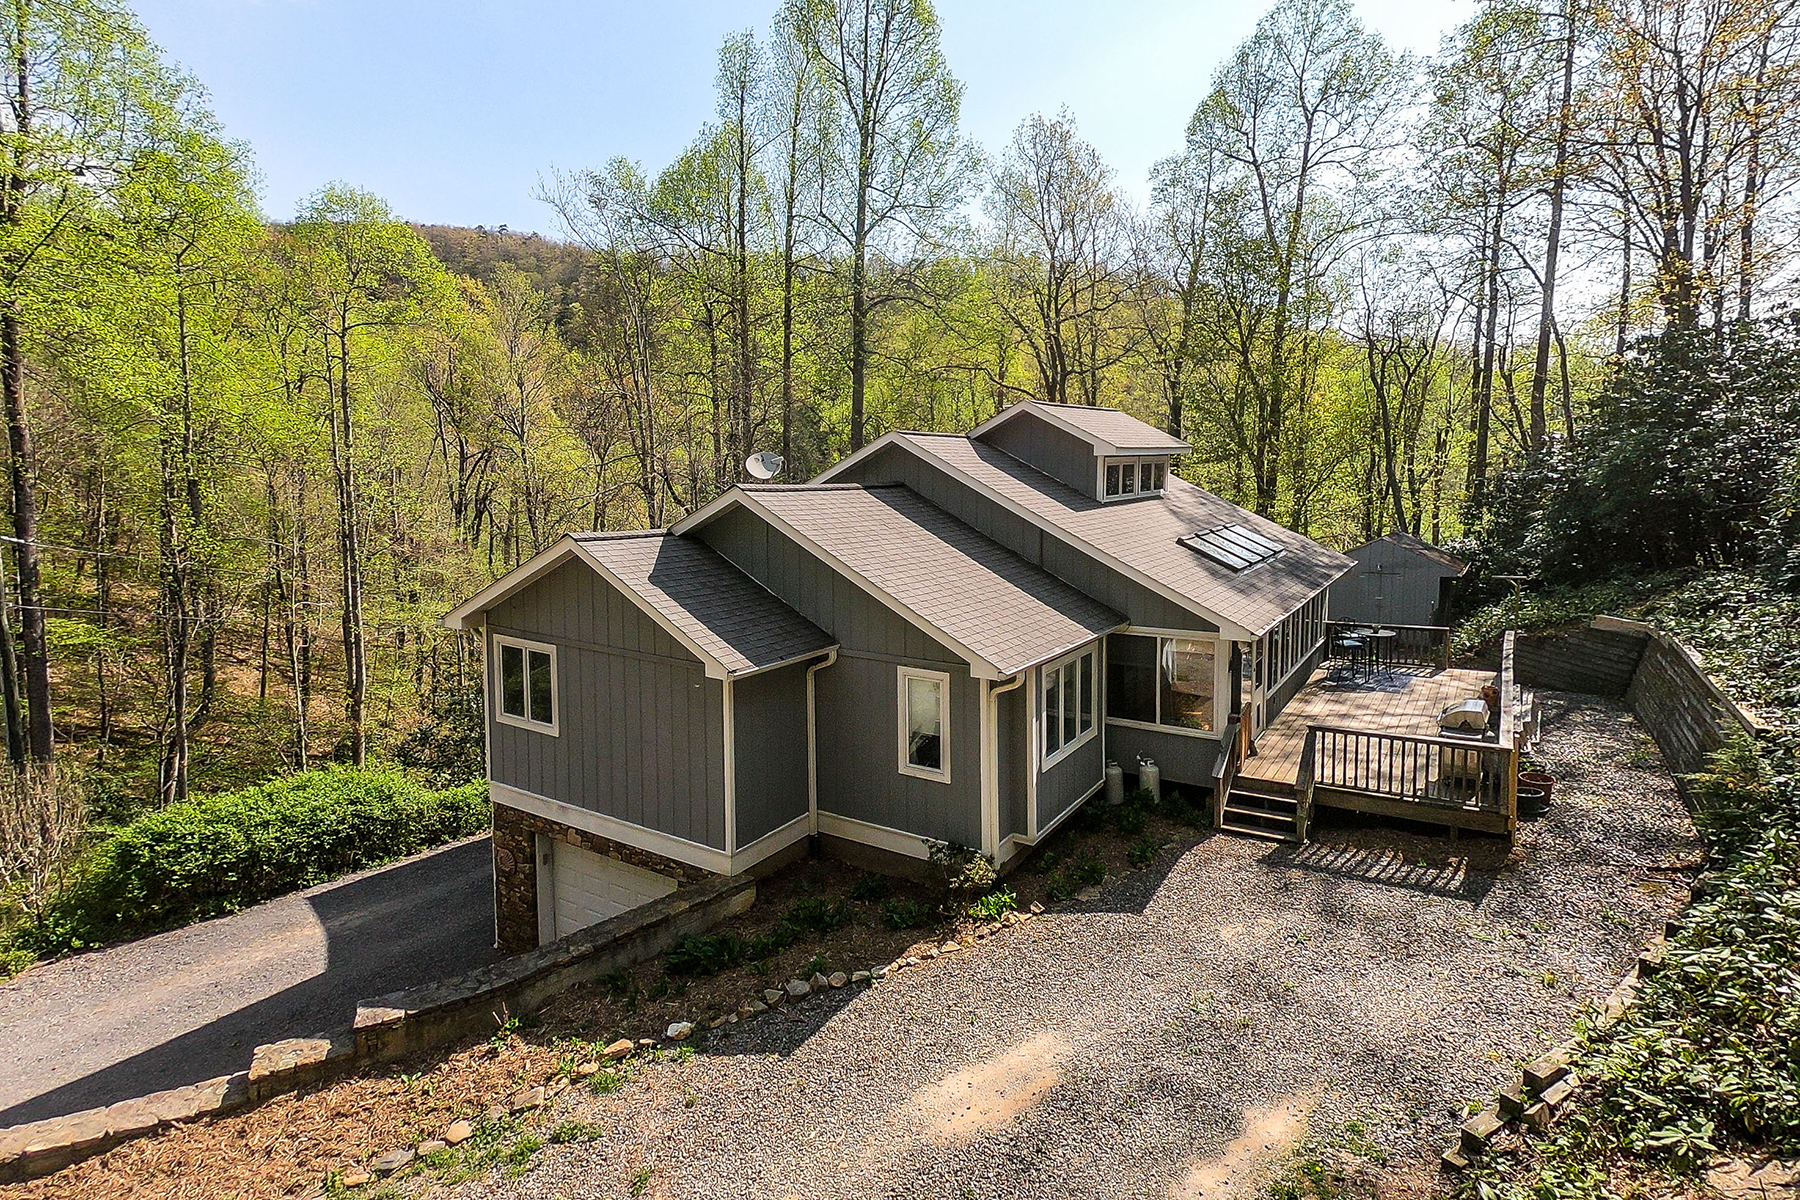 Single Family Home for Active at 60 Miller Cove Road Black Mountain, North Carolina 28711 United States